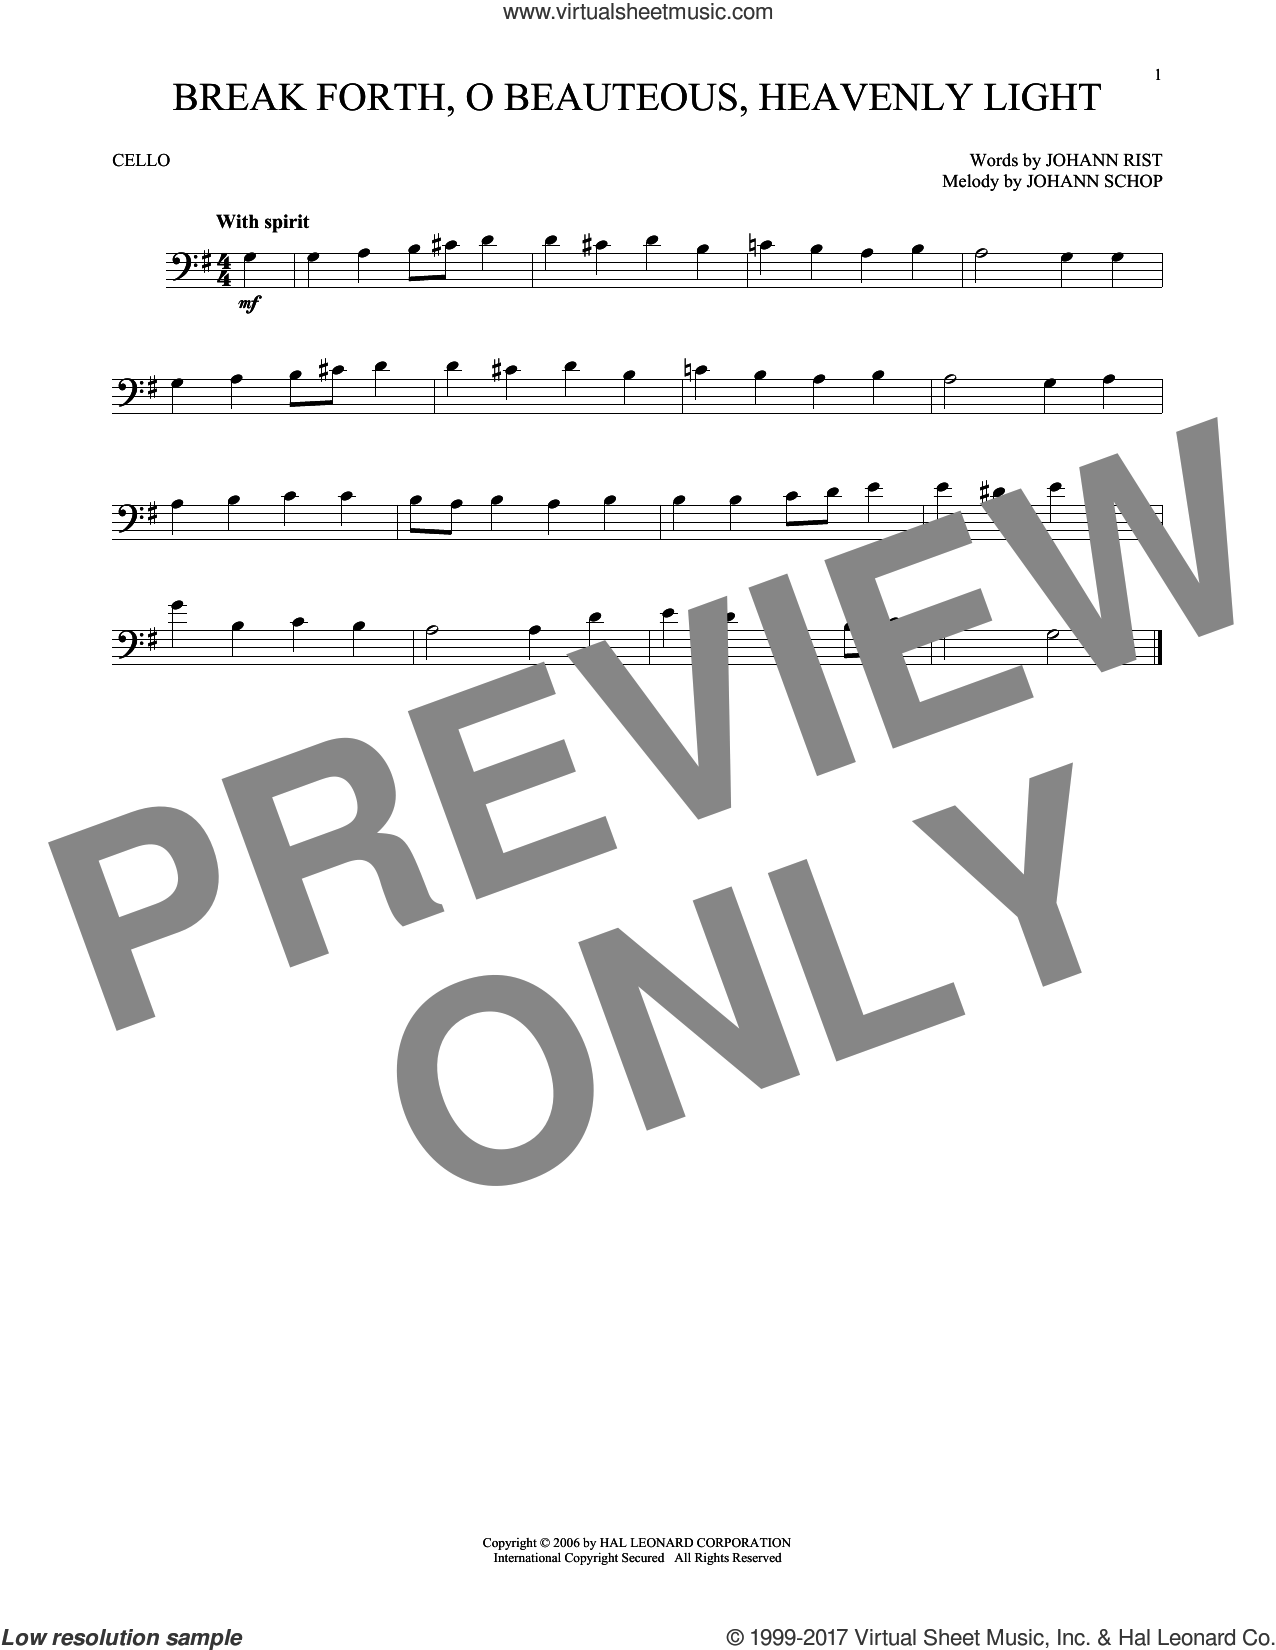 Break Forth, O Beauteous, Heavenly Light sheet music for cello solo by Johann Sebastian Bach, Johann Rist and Johann Schop, classical score, intermediate skill level